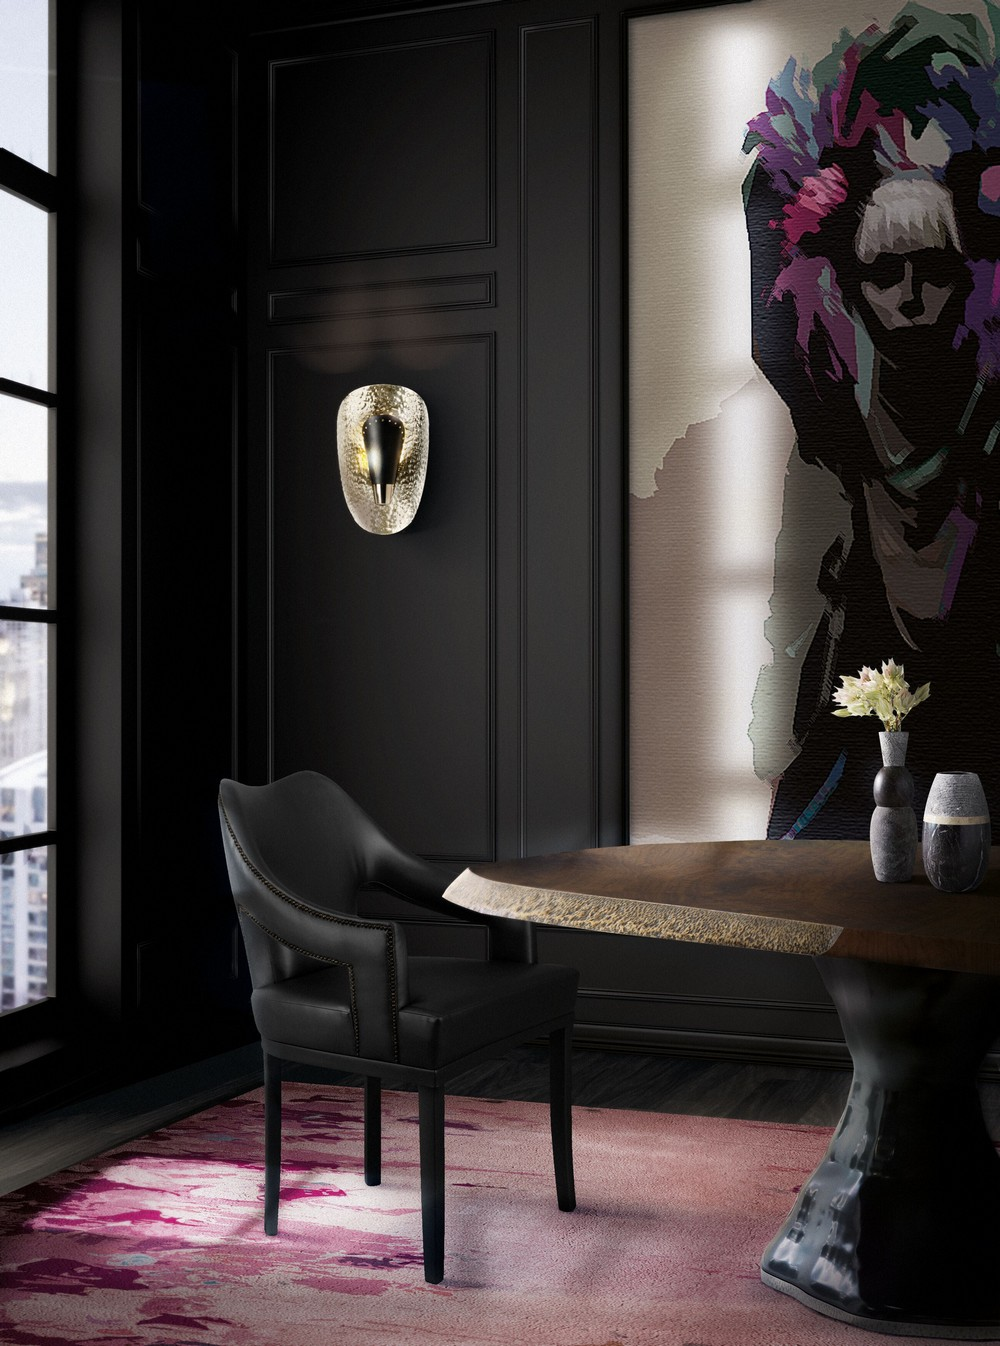 Take a Walk on The Dark Side: The Glamour of Black Luxury Dining Rooms luxury dining rooms Take a Walk on The Dark Side: The Glamour of Black Luxury Dining Rooms f D0R5YA